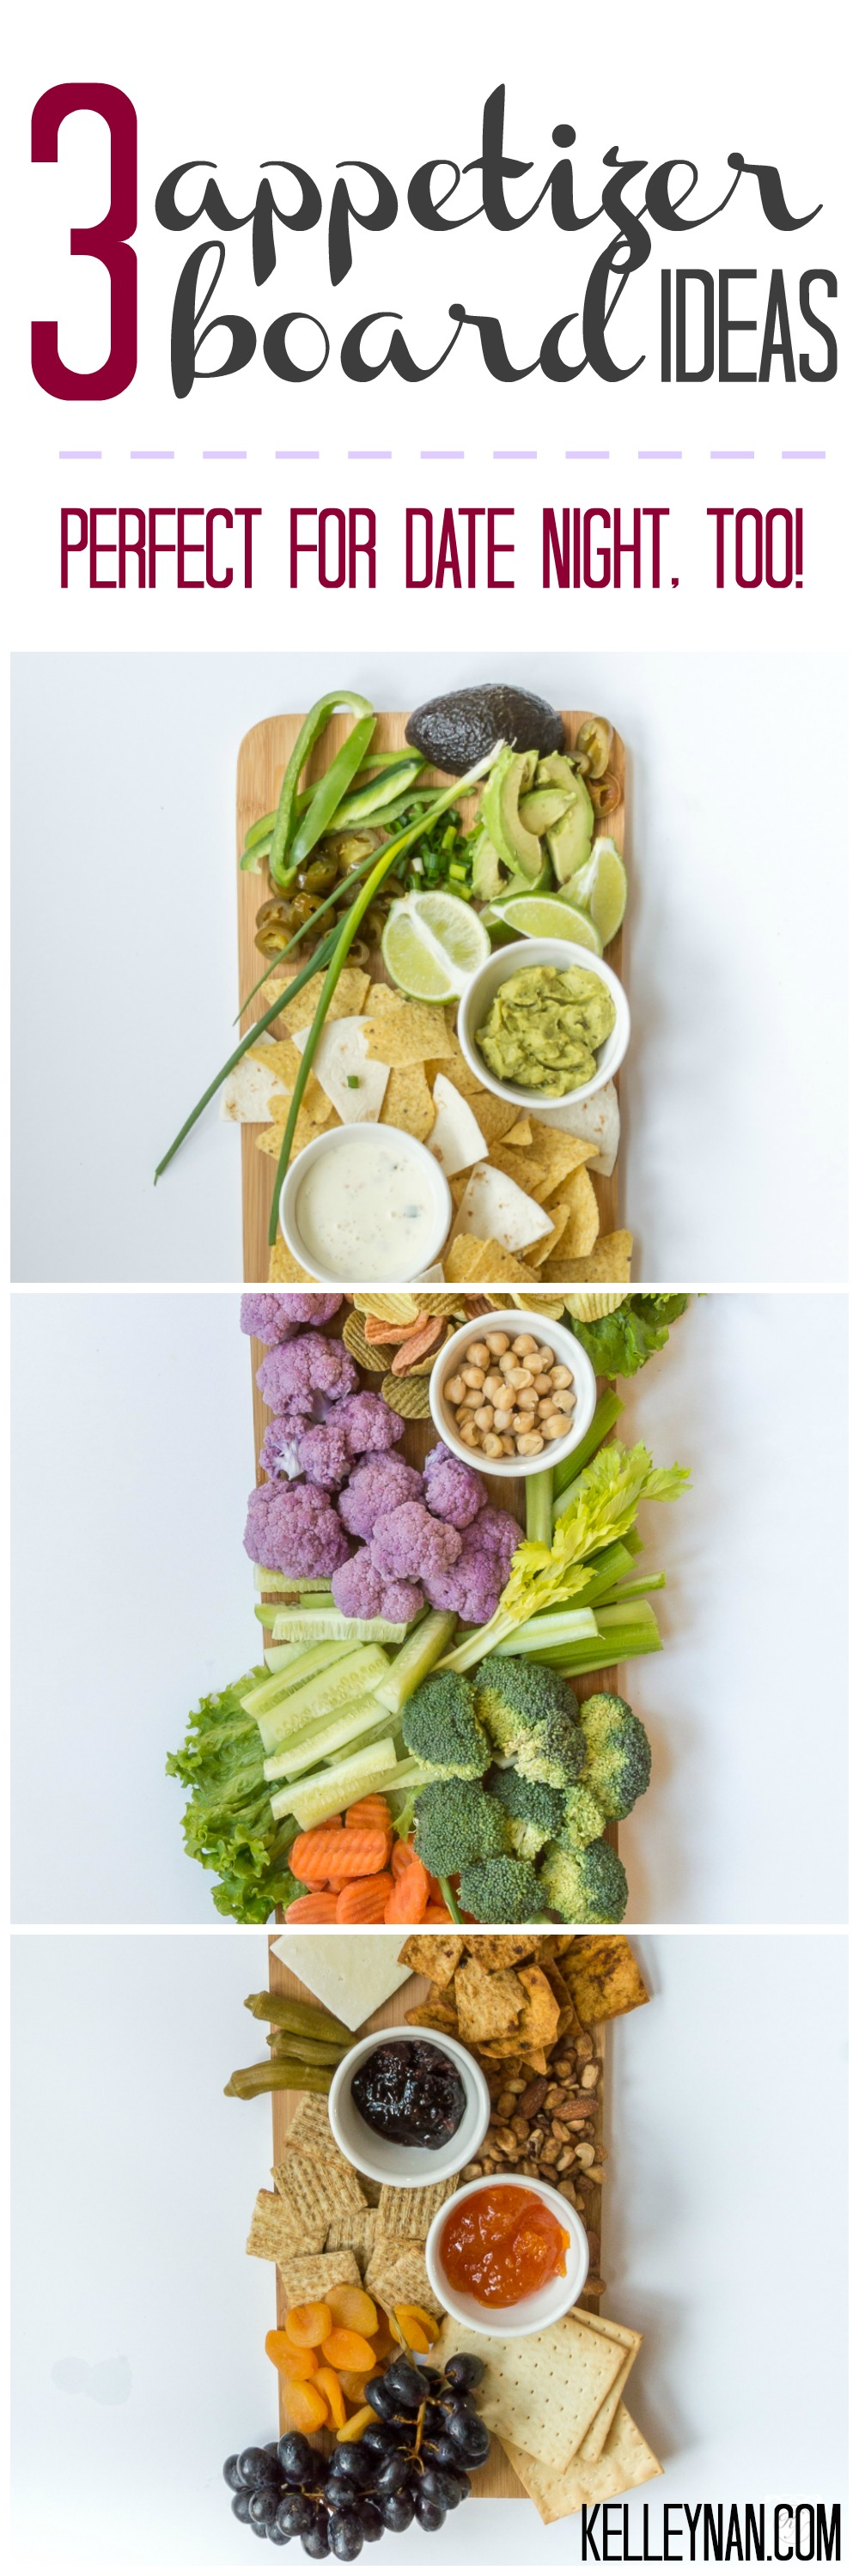 At Home Date night ideas with easy meal board ideas for dinner